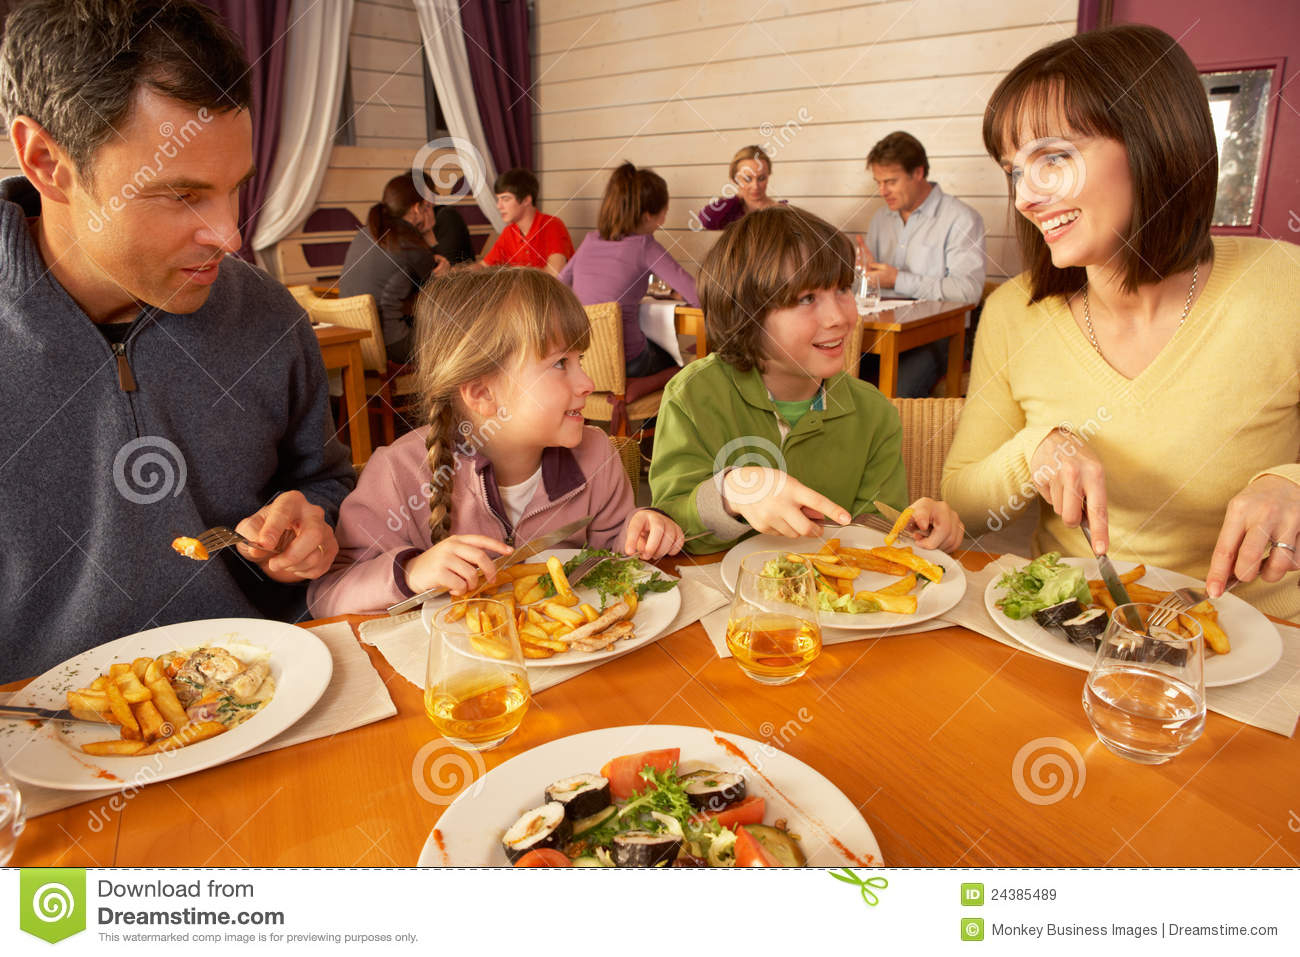 Eating At A Restaurant Clipart - Clipart Suggest